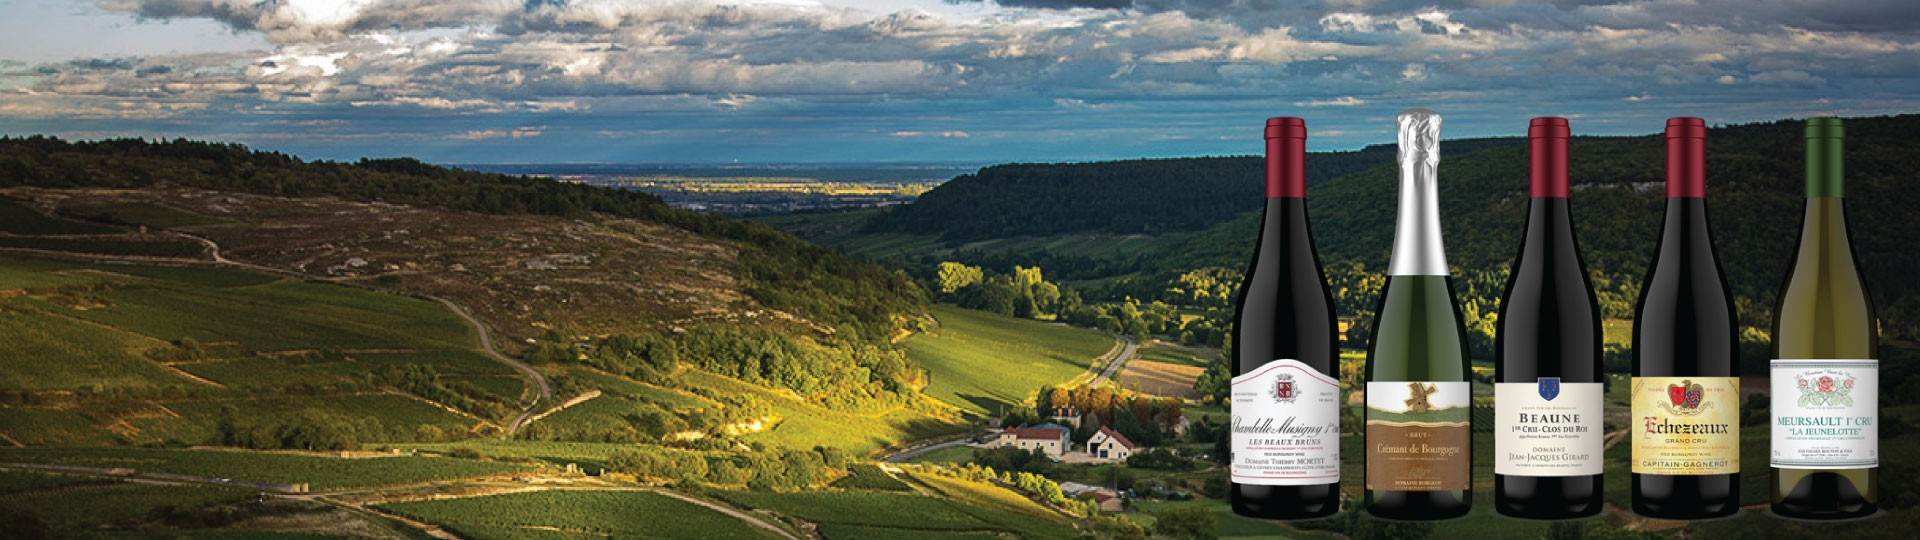 5 Burgundy wines are superimposed over a small winemaking village in Burgundy, France